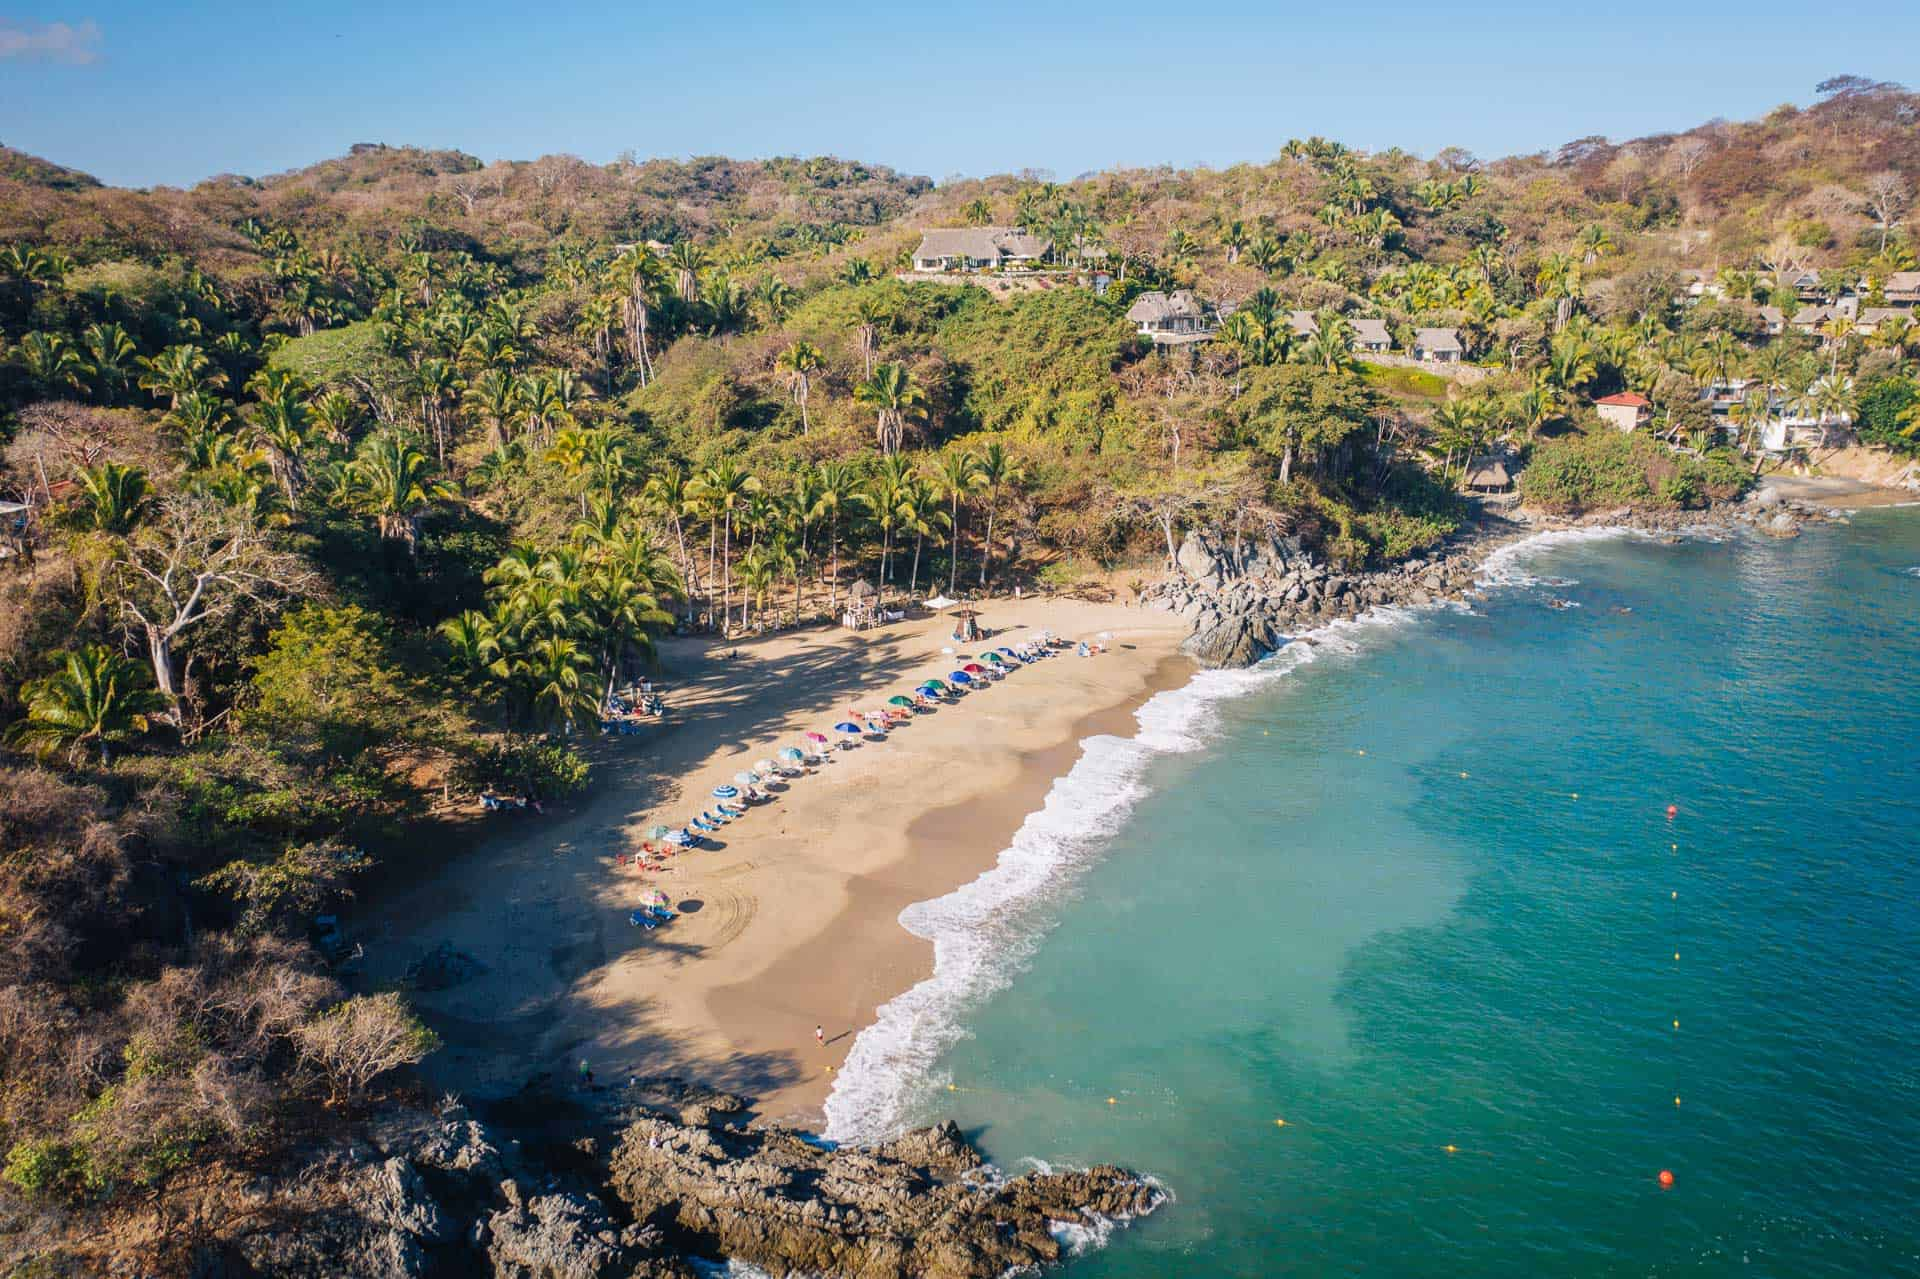 things to do in sayulita, sayulita mexico, what to do in sayulita, sayulita, monkey mountain sayulita